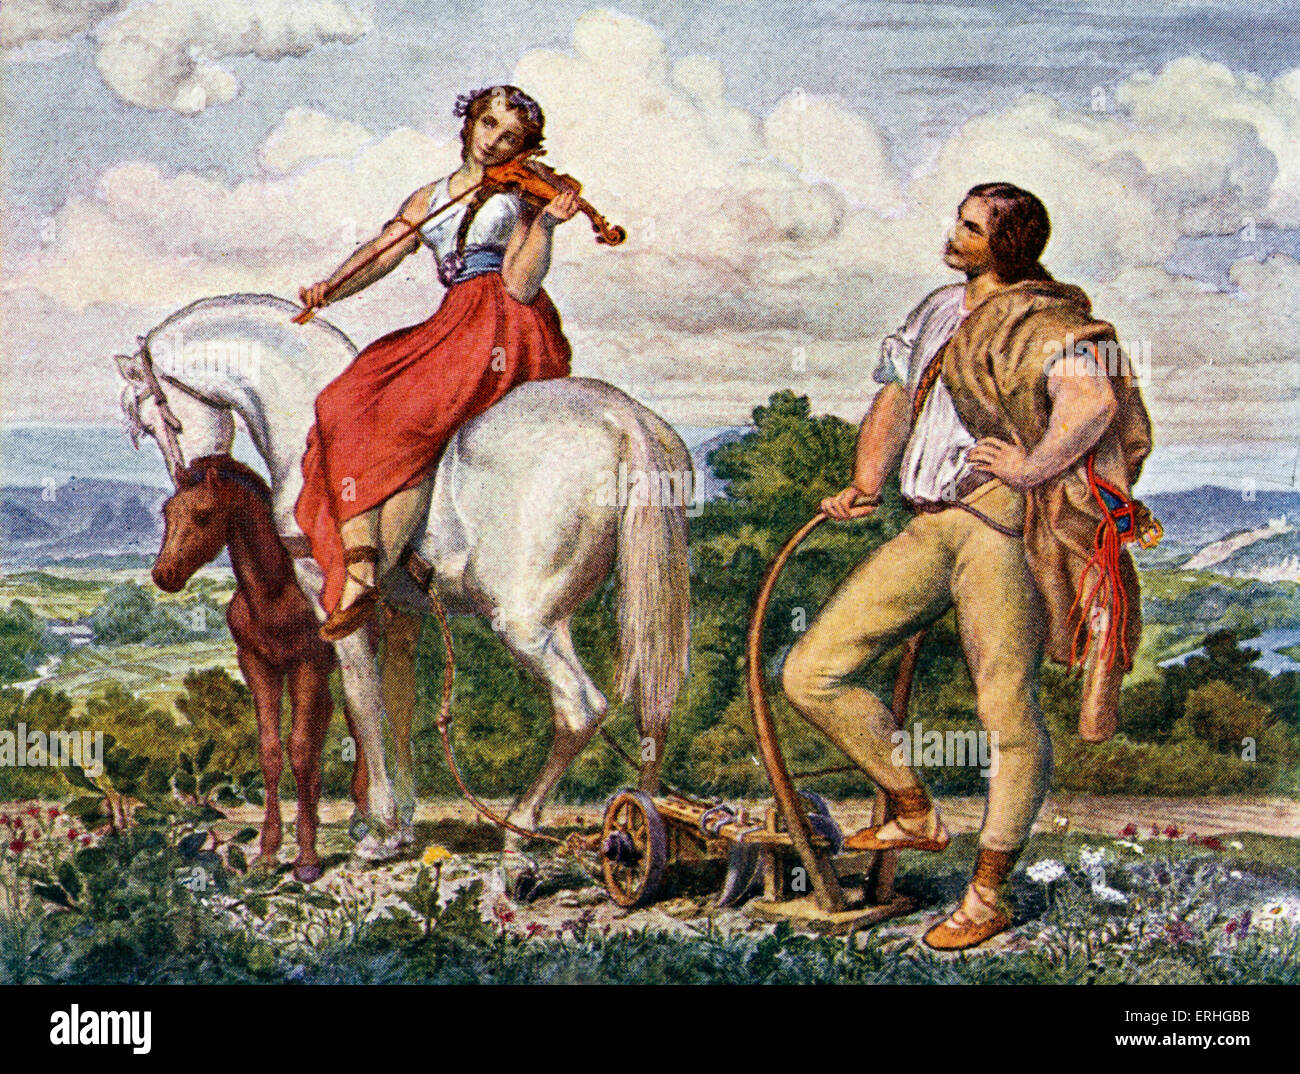 Czech nationalism - painting of 'The Fatherland' showing a woman on horseback playing the violin representing - Stock Image